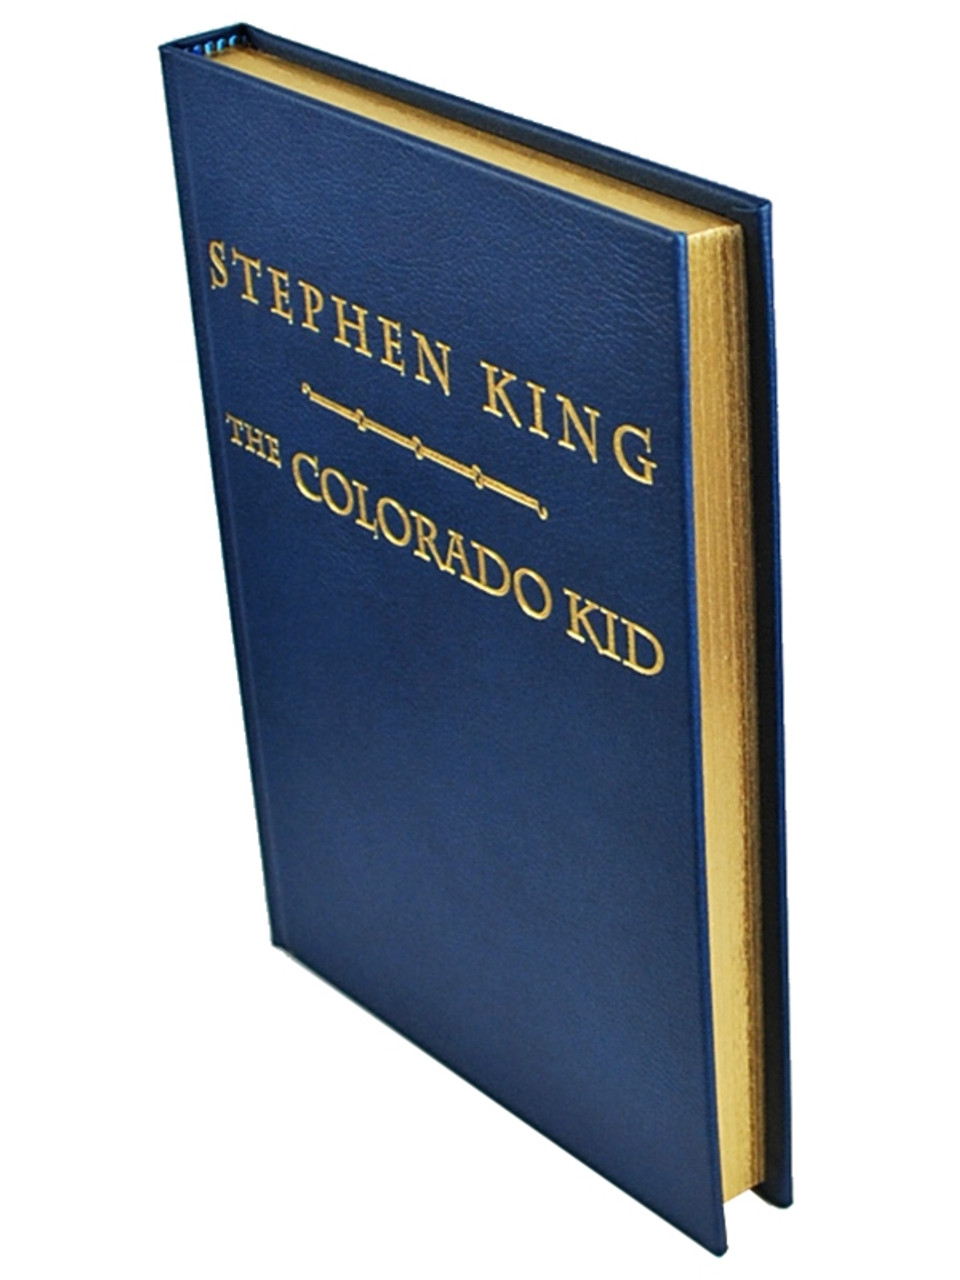 """Stephen King """"The Colorado Kid"""" Signed Lettered Edition #17 of only 33, Leather Bound"""